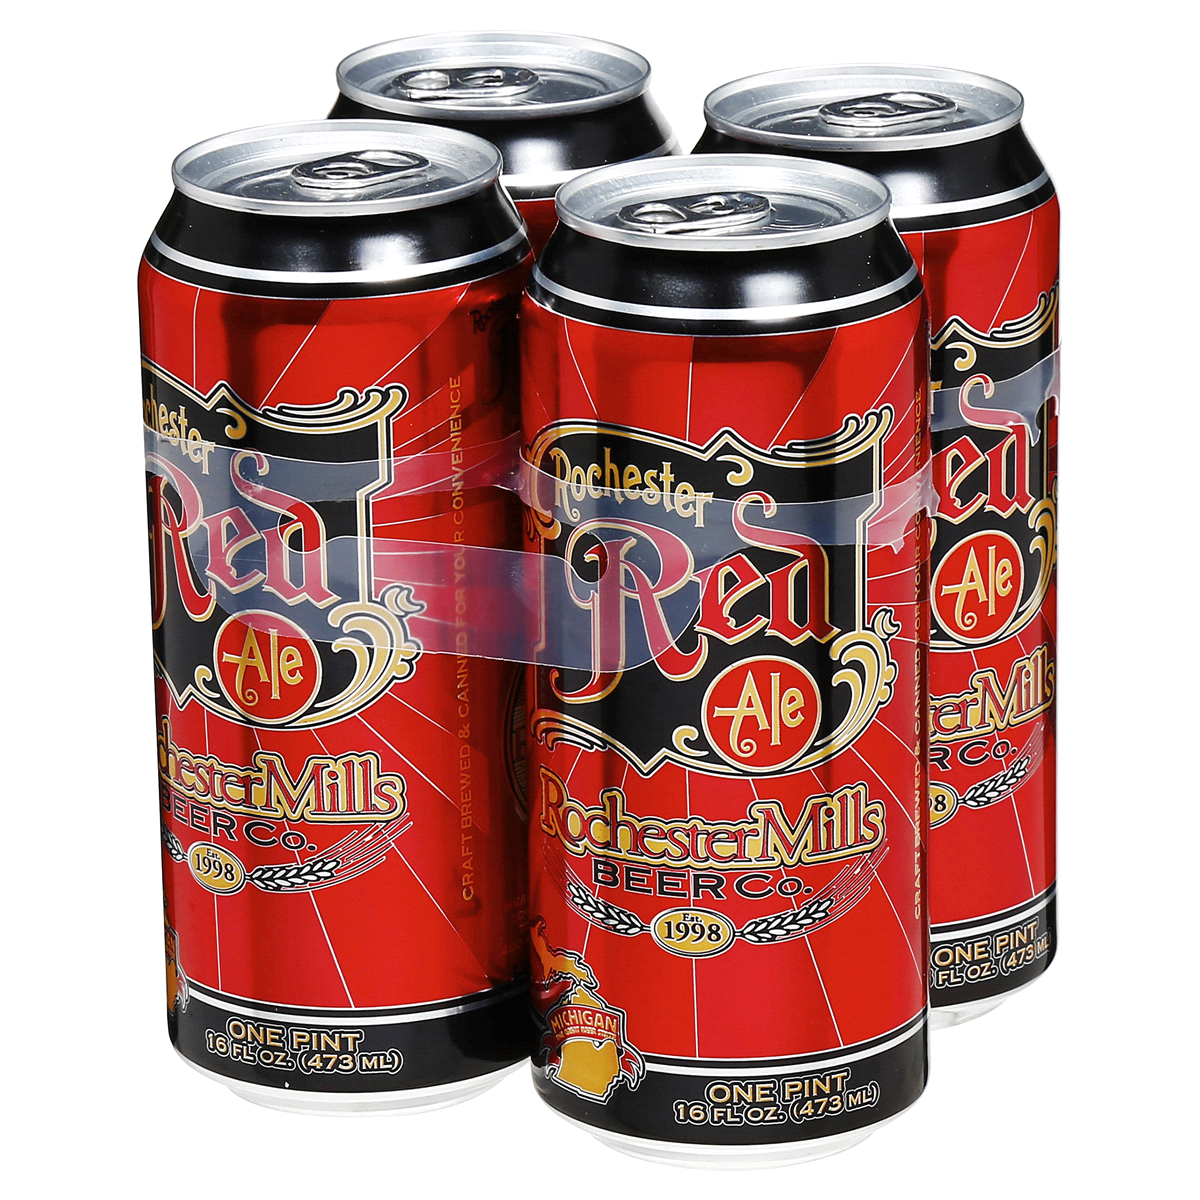 slide 2 of 4, Rochester Mills Red Ale,